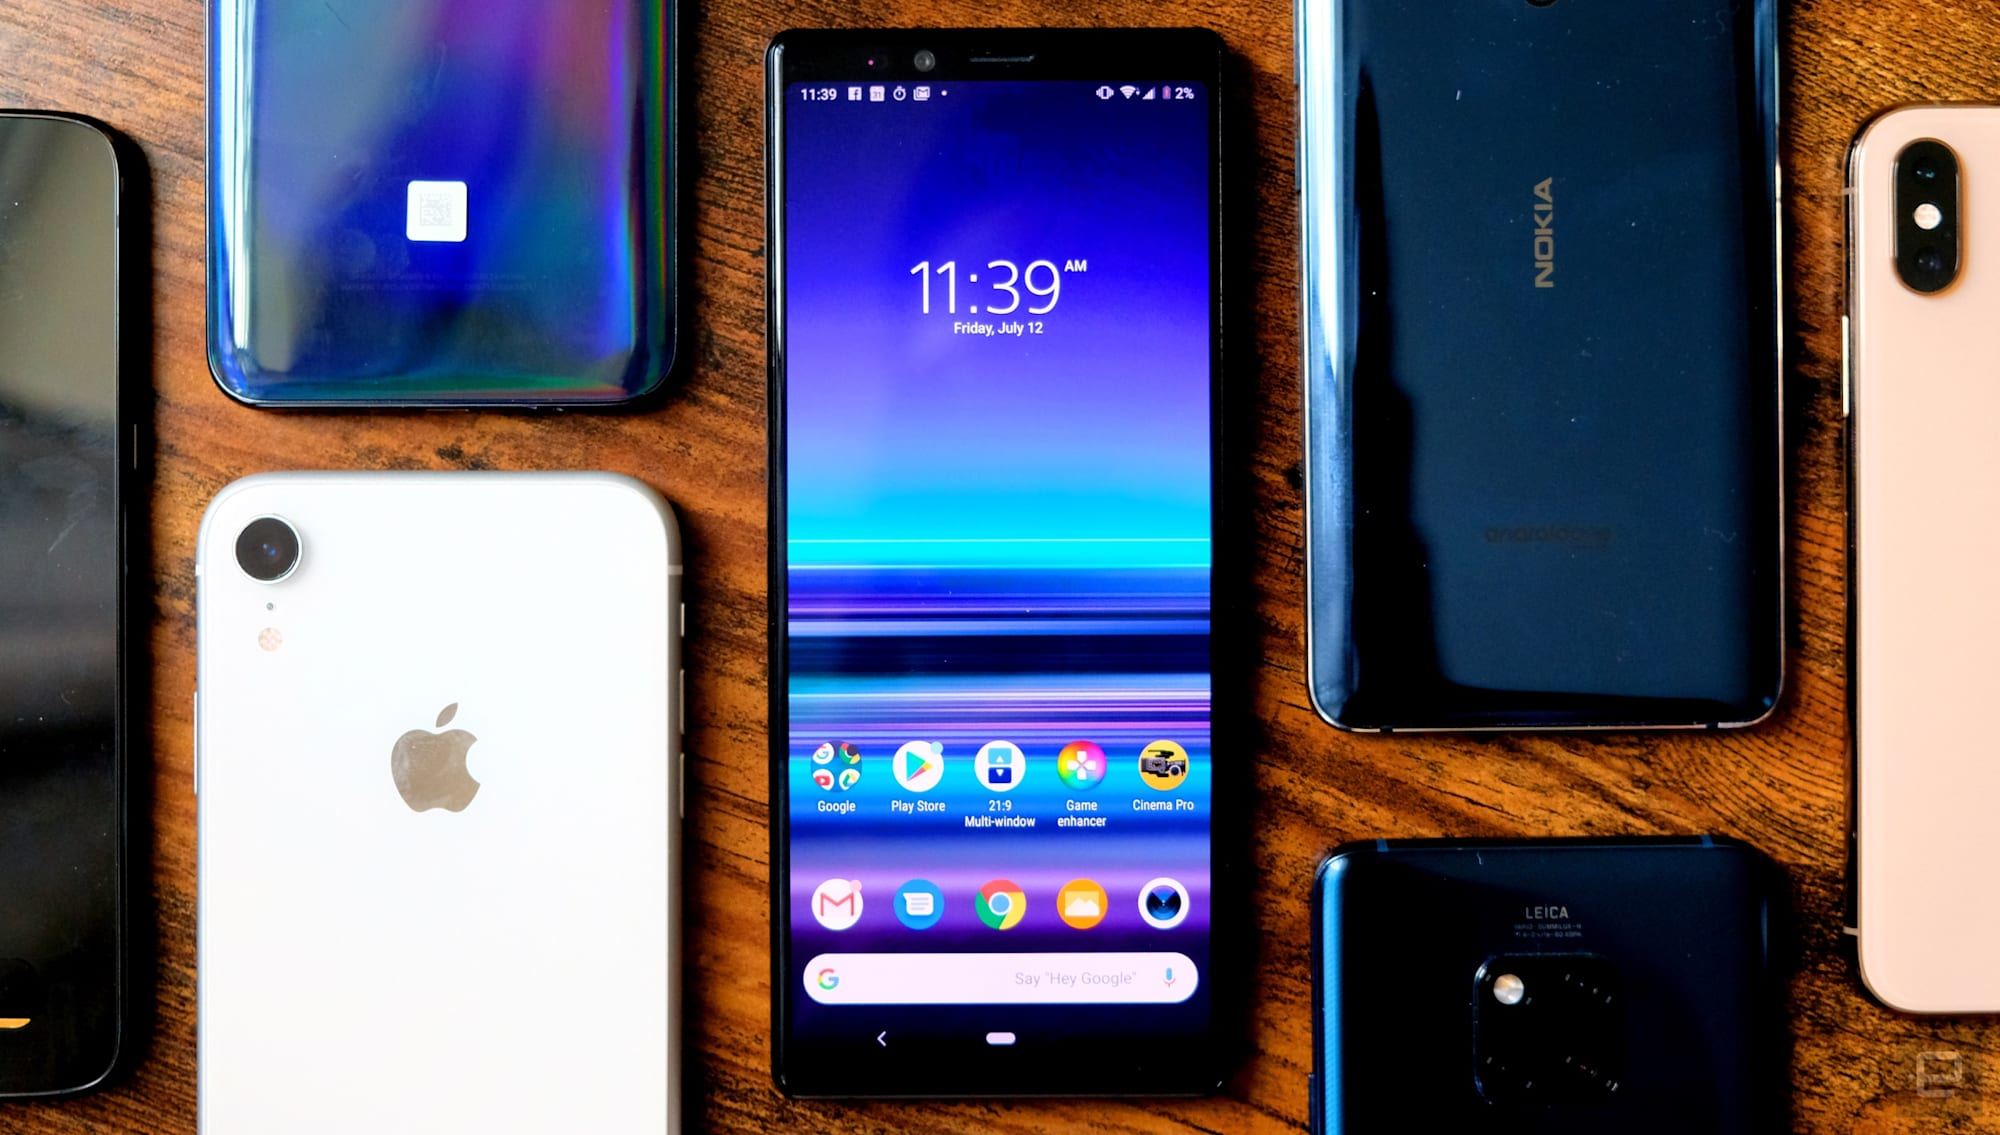 Sony Xperia 1 review: Powerful, but not sensible